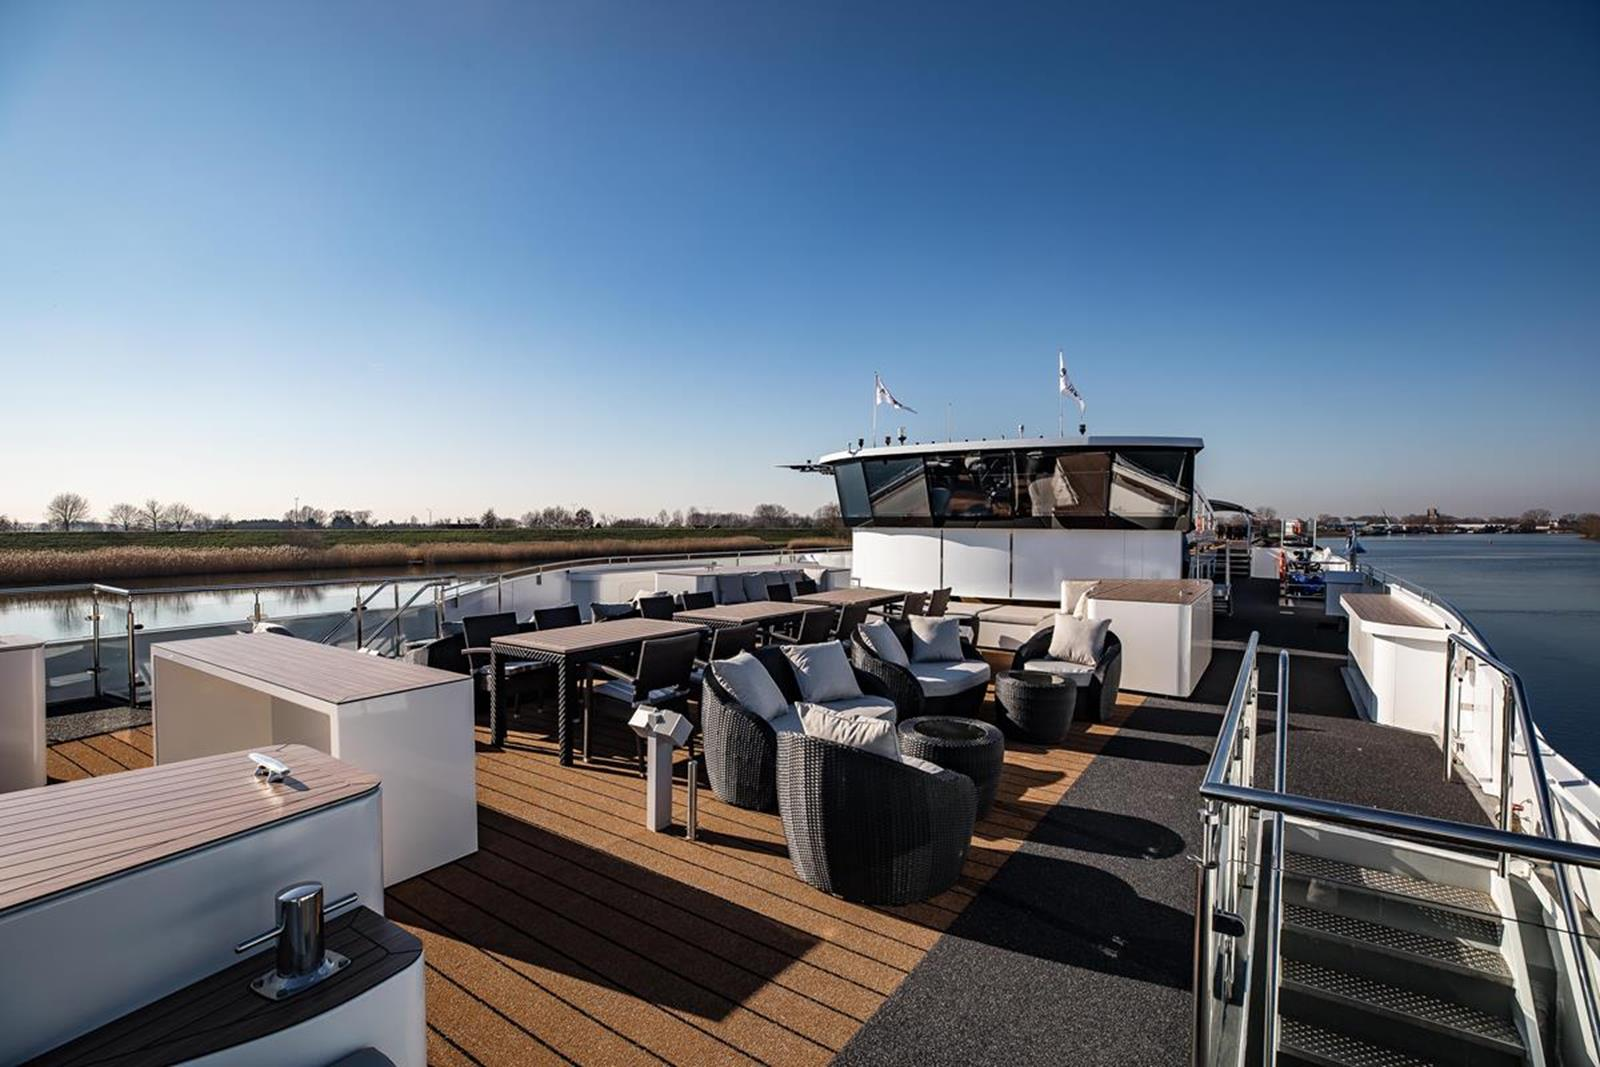 MS George Eliot sun deck 2 - Courtesy of Riviera River Cruises